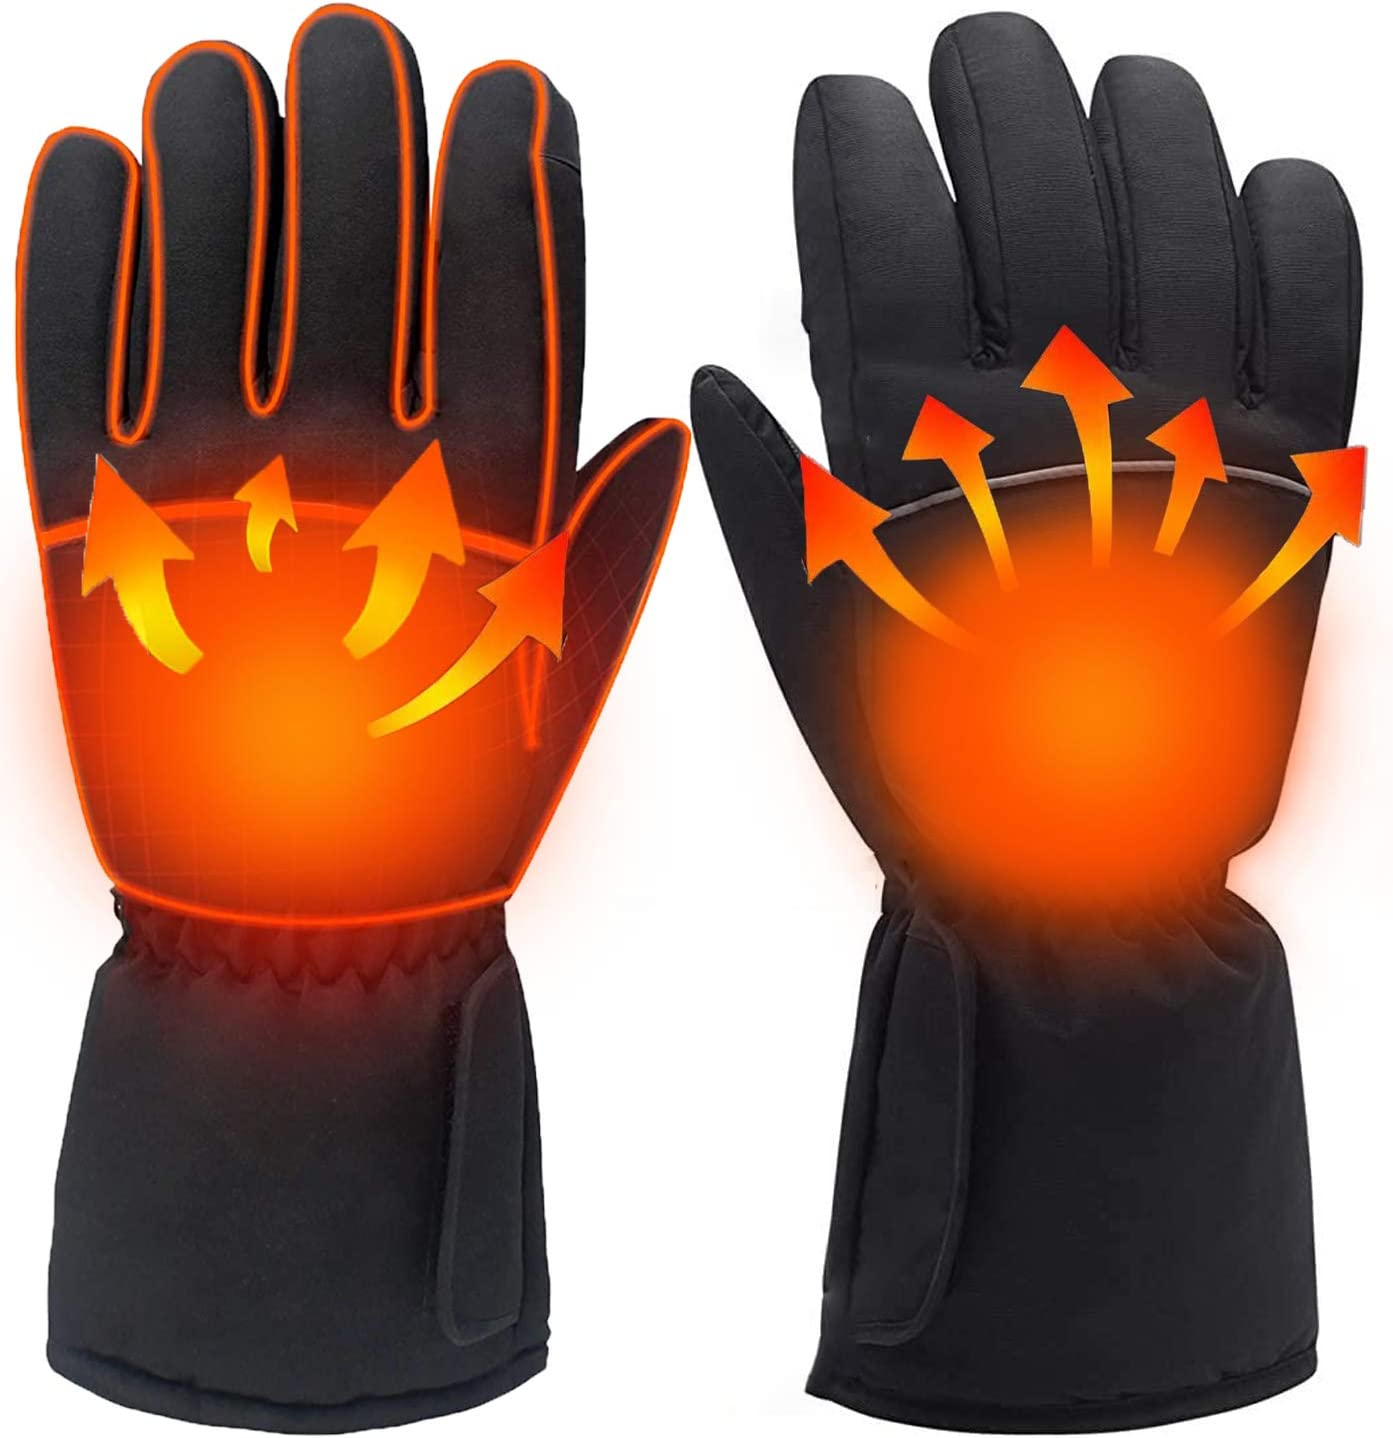 Mountain Made Outdoor Hiking Gloves